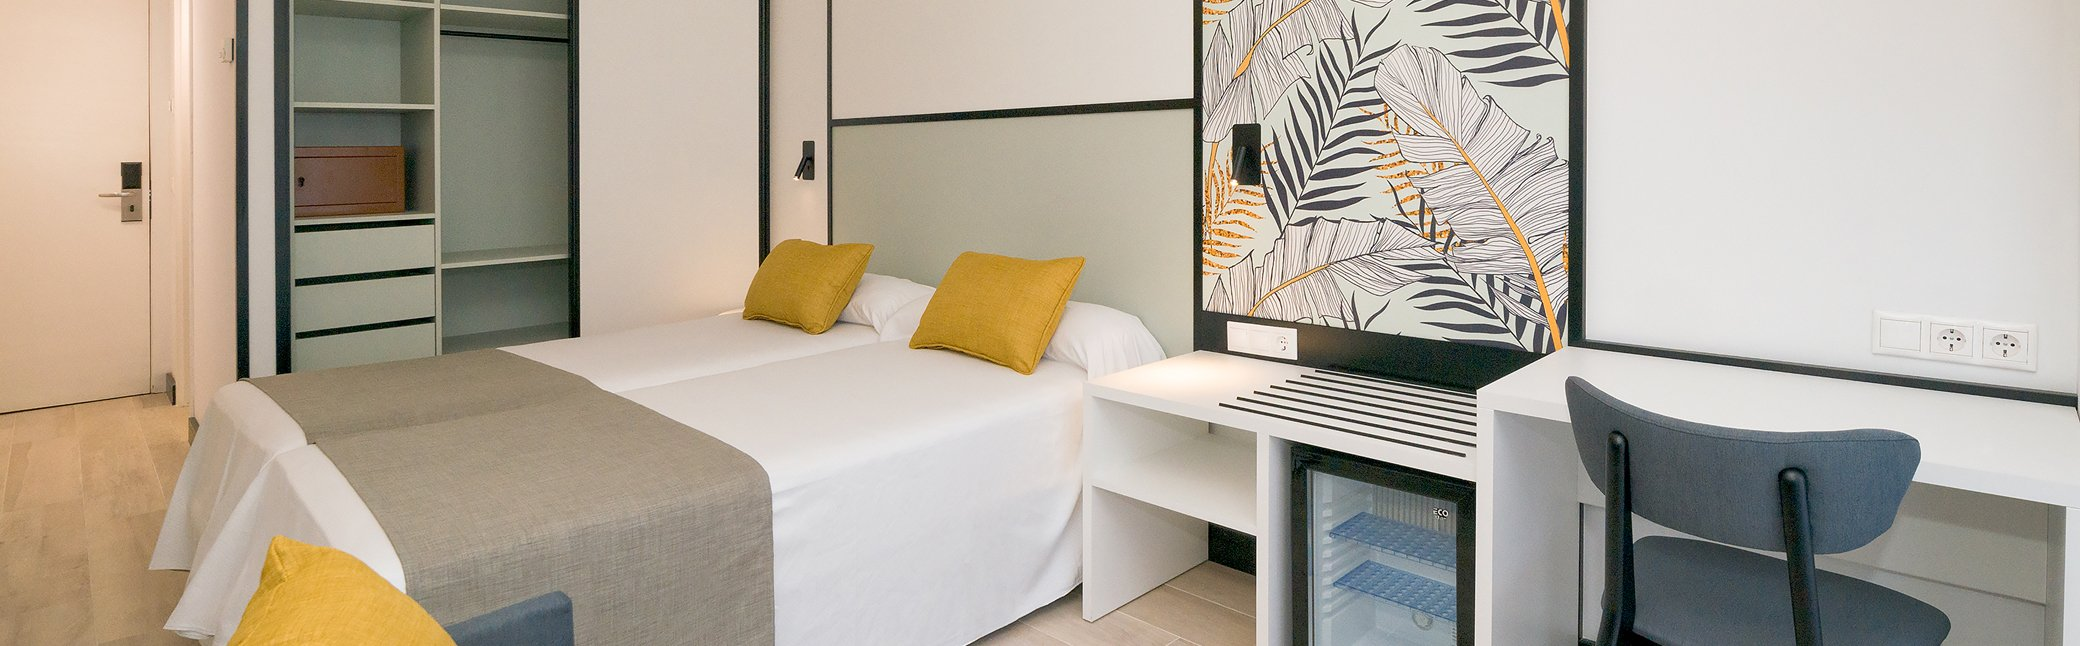 New Superior Rooms Hotel Calypso Summer 2018!